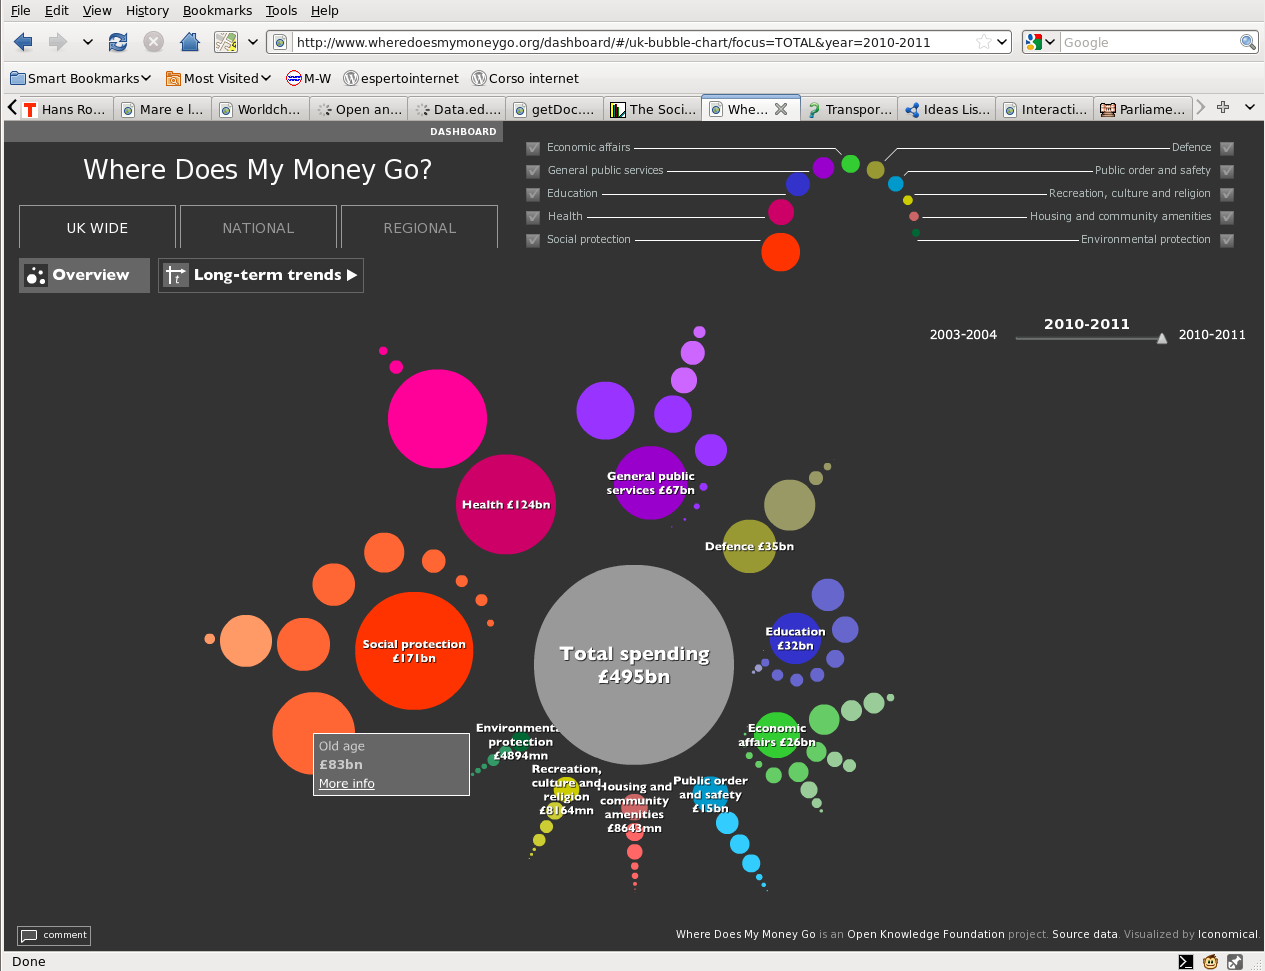 Open Data about Budgets and taxes /img/wheredoesmymoneygoexample.png